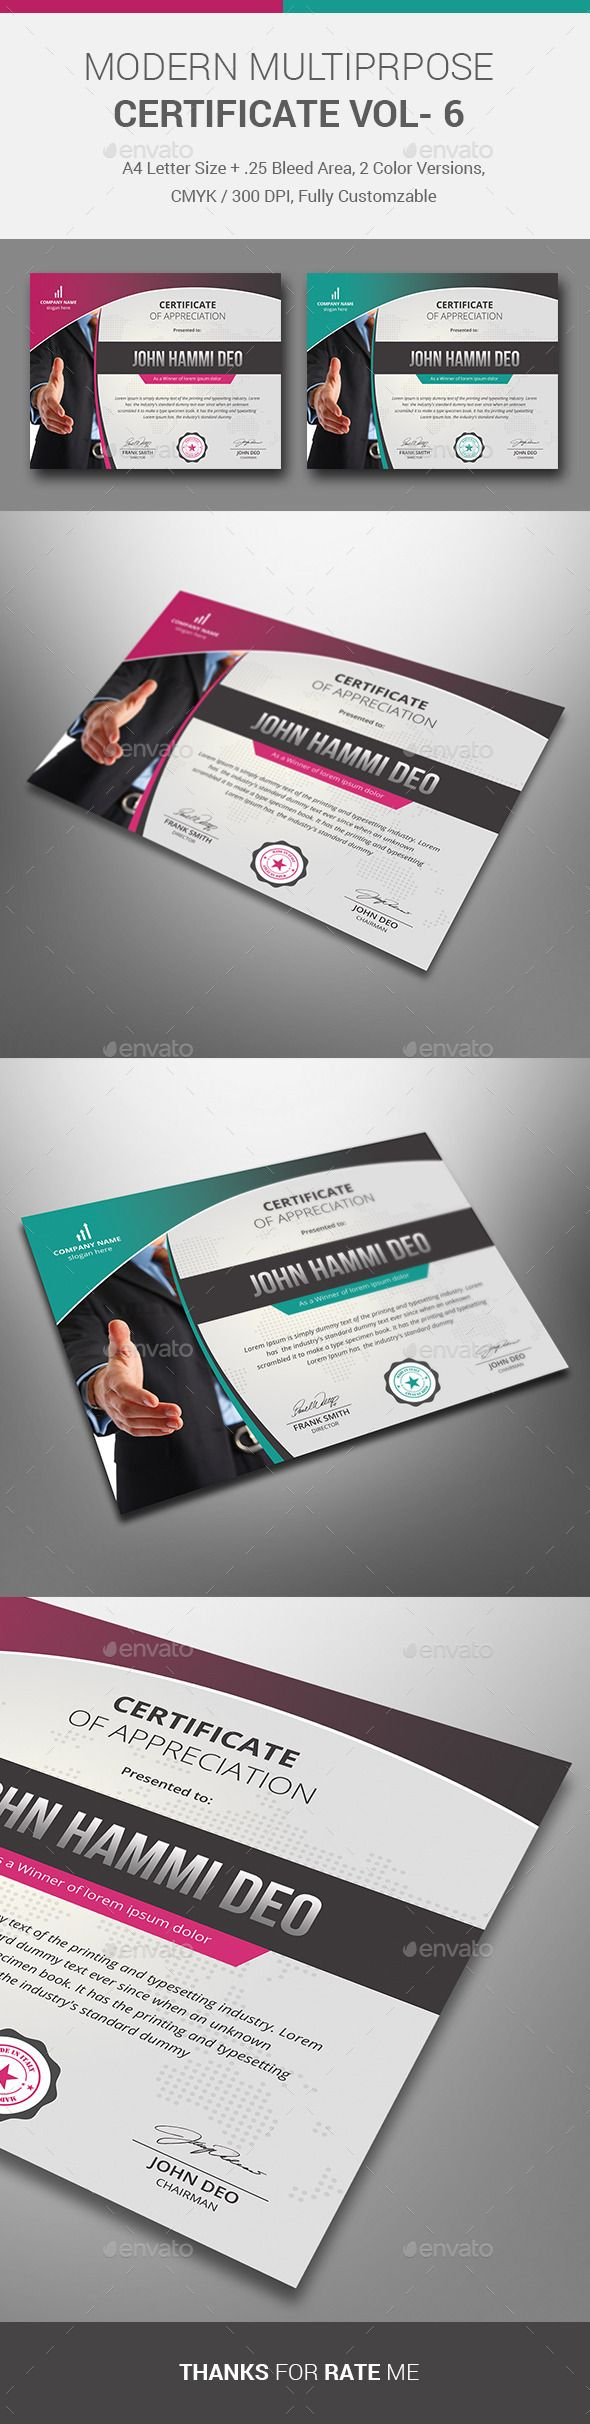 34 best certificate templates psd images on pinterest font logo professionalcertificatetemplate is made in adobe photoshop and adobe illustrator version too download http yelopaper Image collections